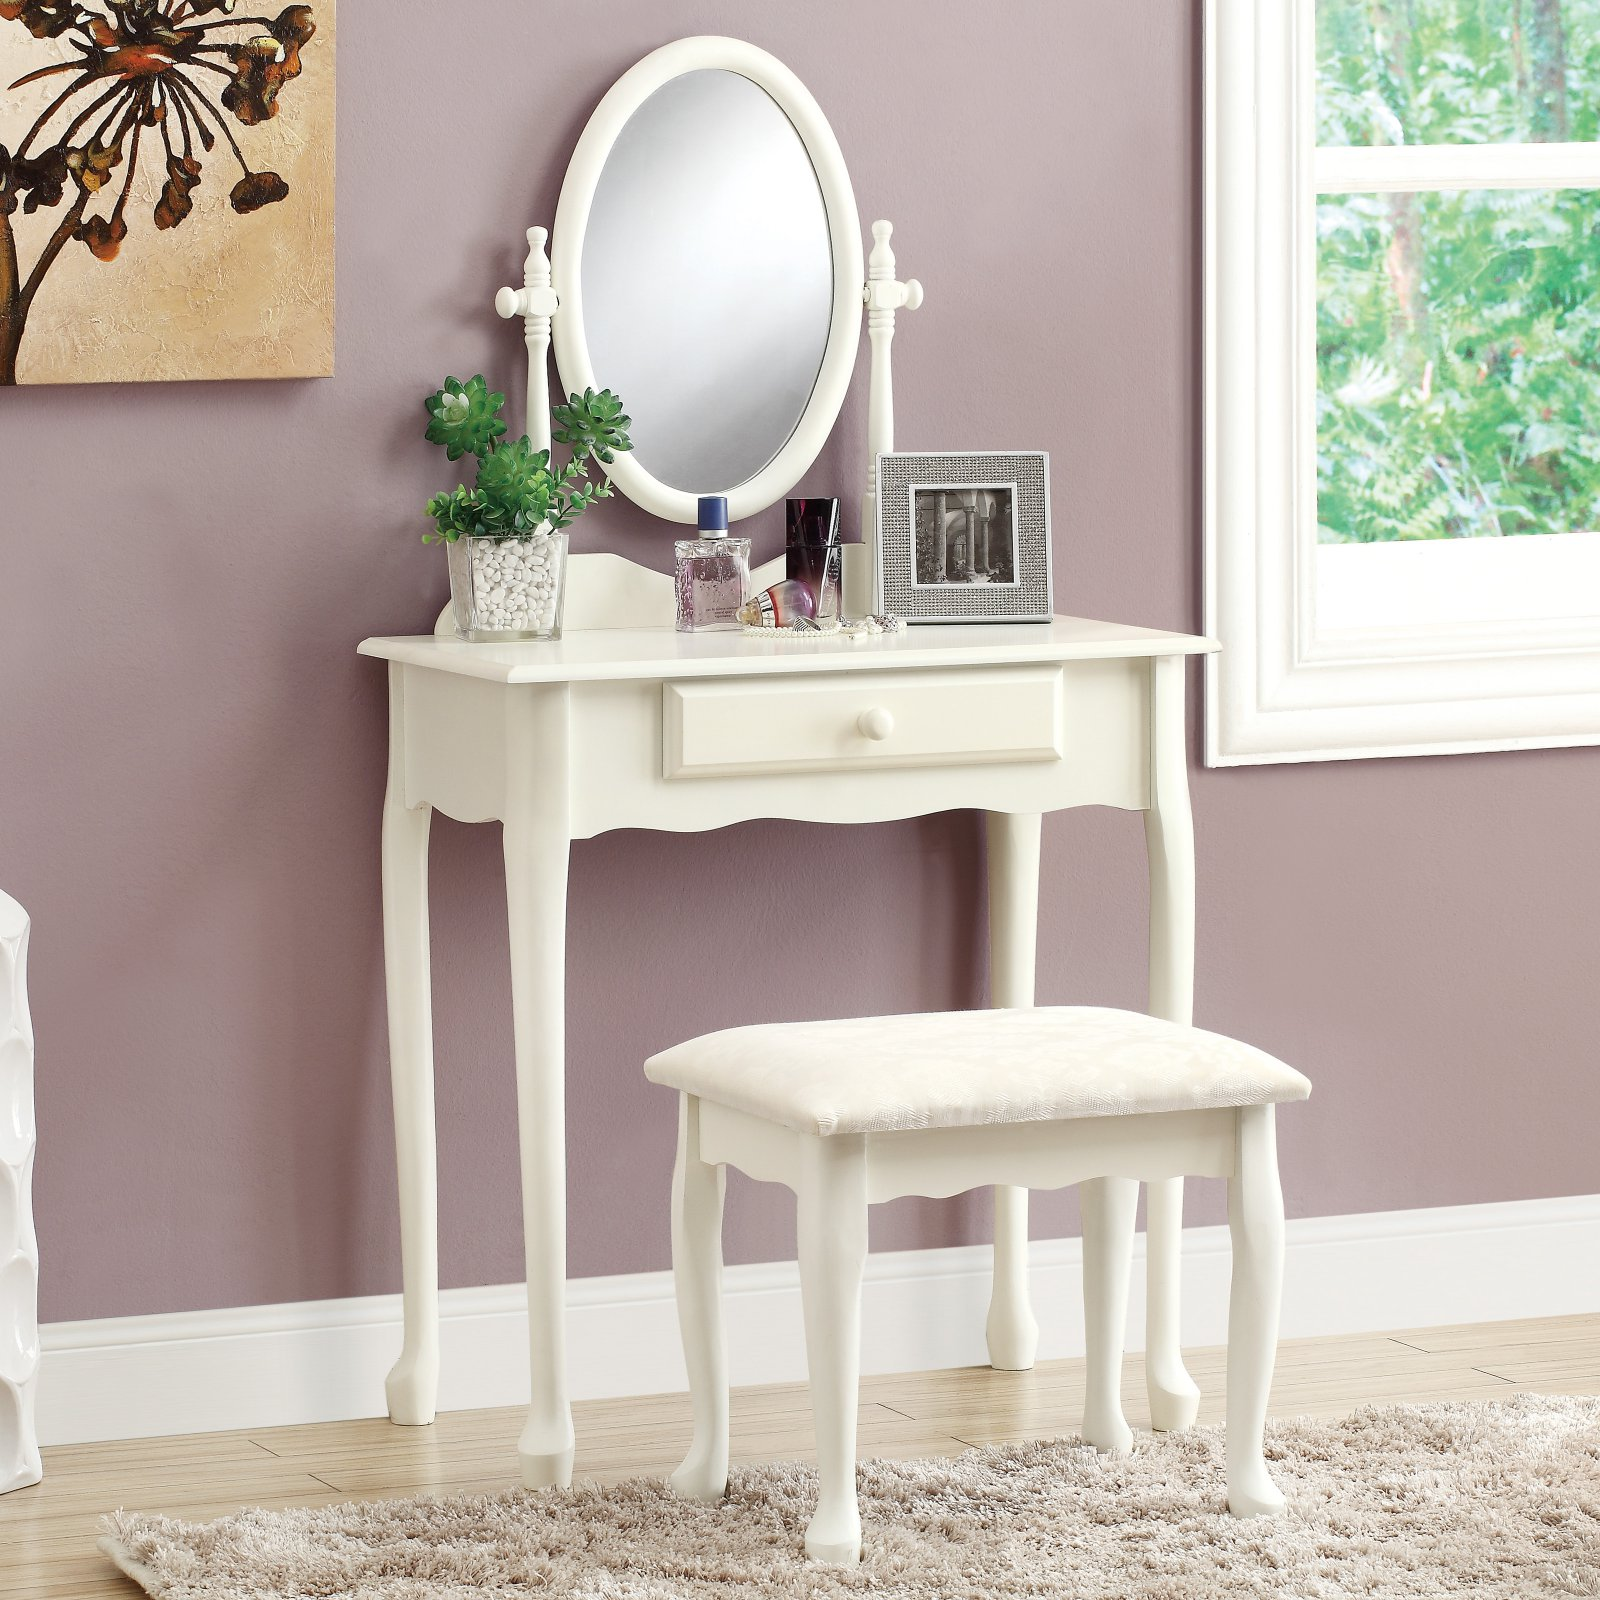 Monarch Bedroom Vanity Set - Antique White in 2019 | Products ...